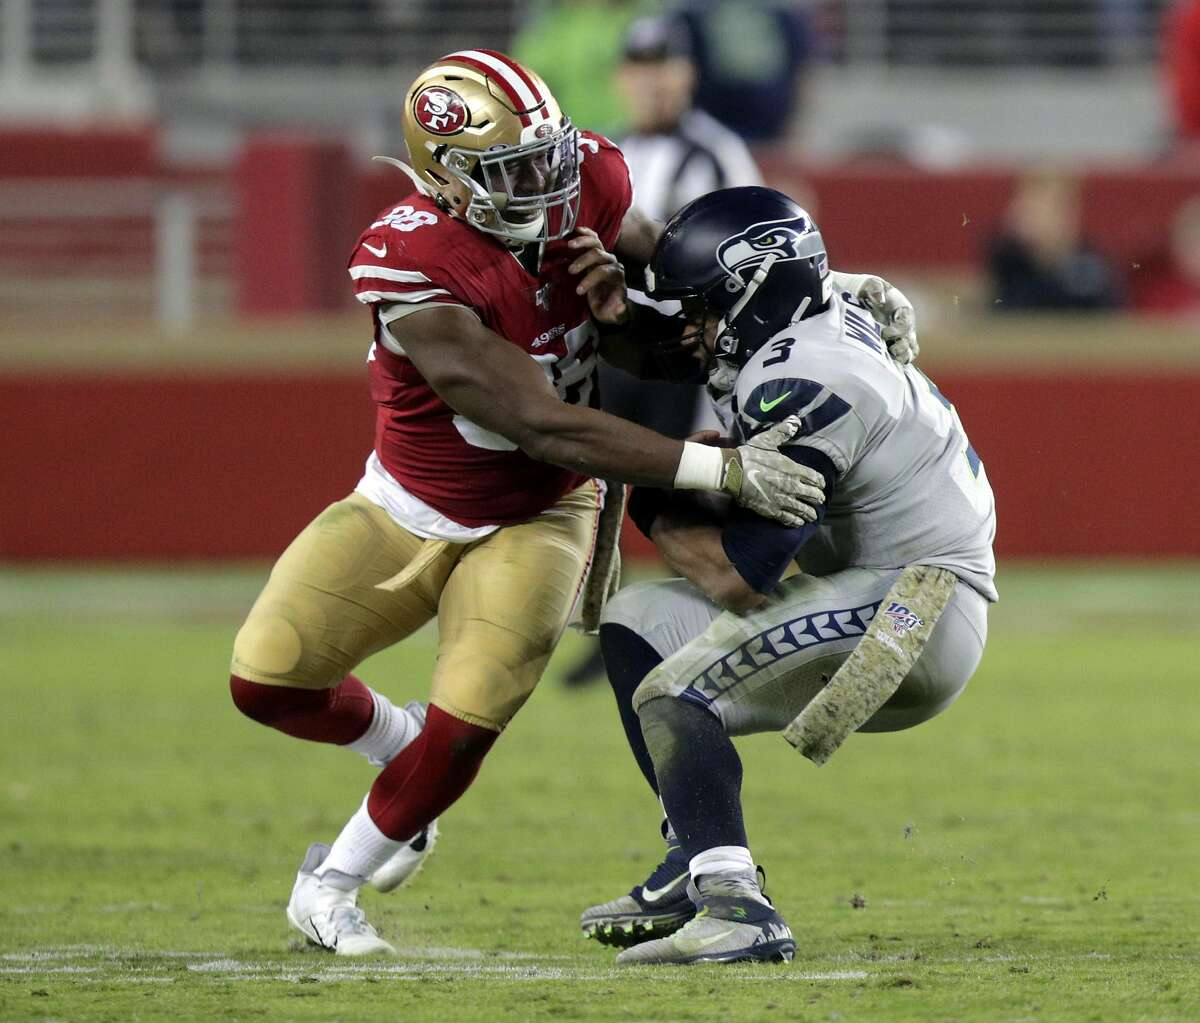 Ronald Blair (98) sacks Russell Wilson (3) in the second half as the San Francisco 49ers played the Seattle Seahawks at Levi's Stadium in Santa Clara, Calif., on Monday, November 11/11/19, 2019. The Seahawks came back to win 27-24 to give the 49ers their first loss of the season